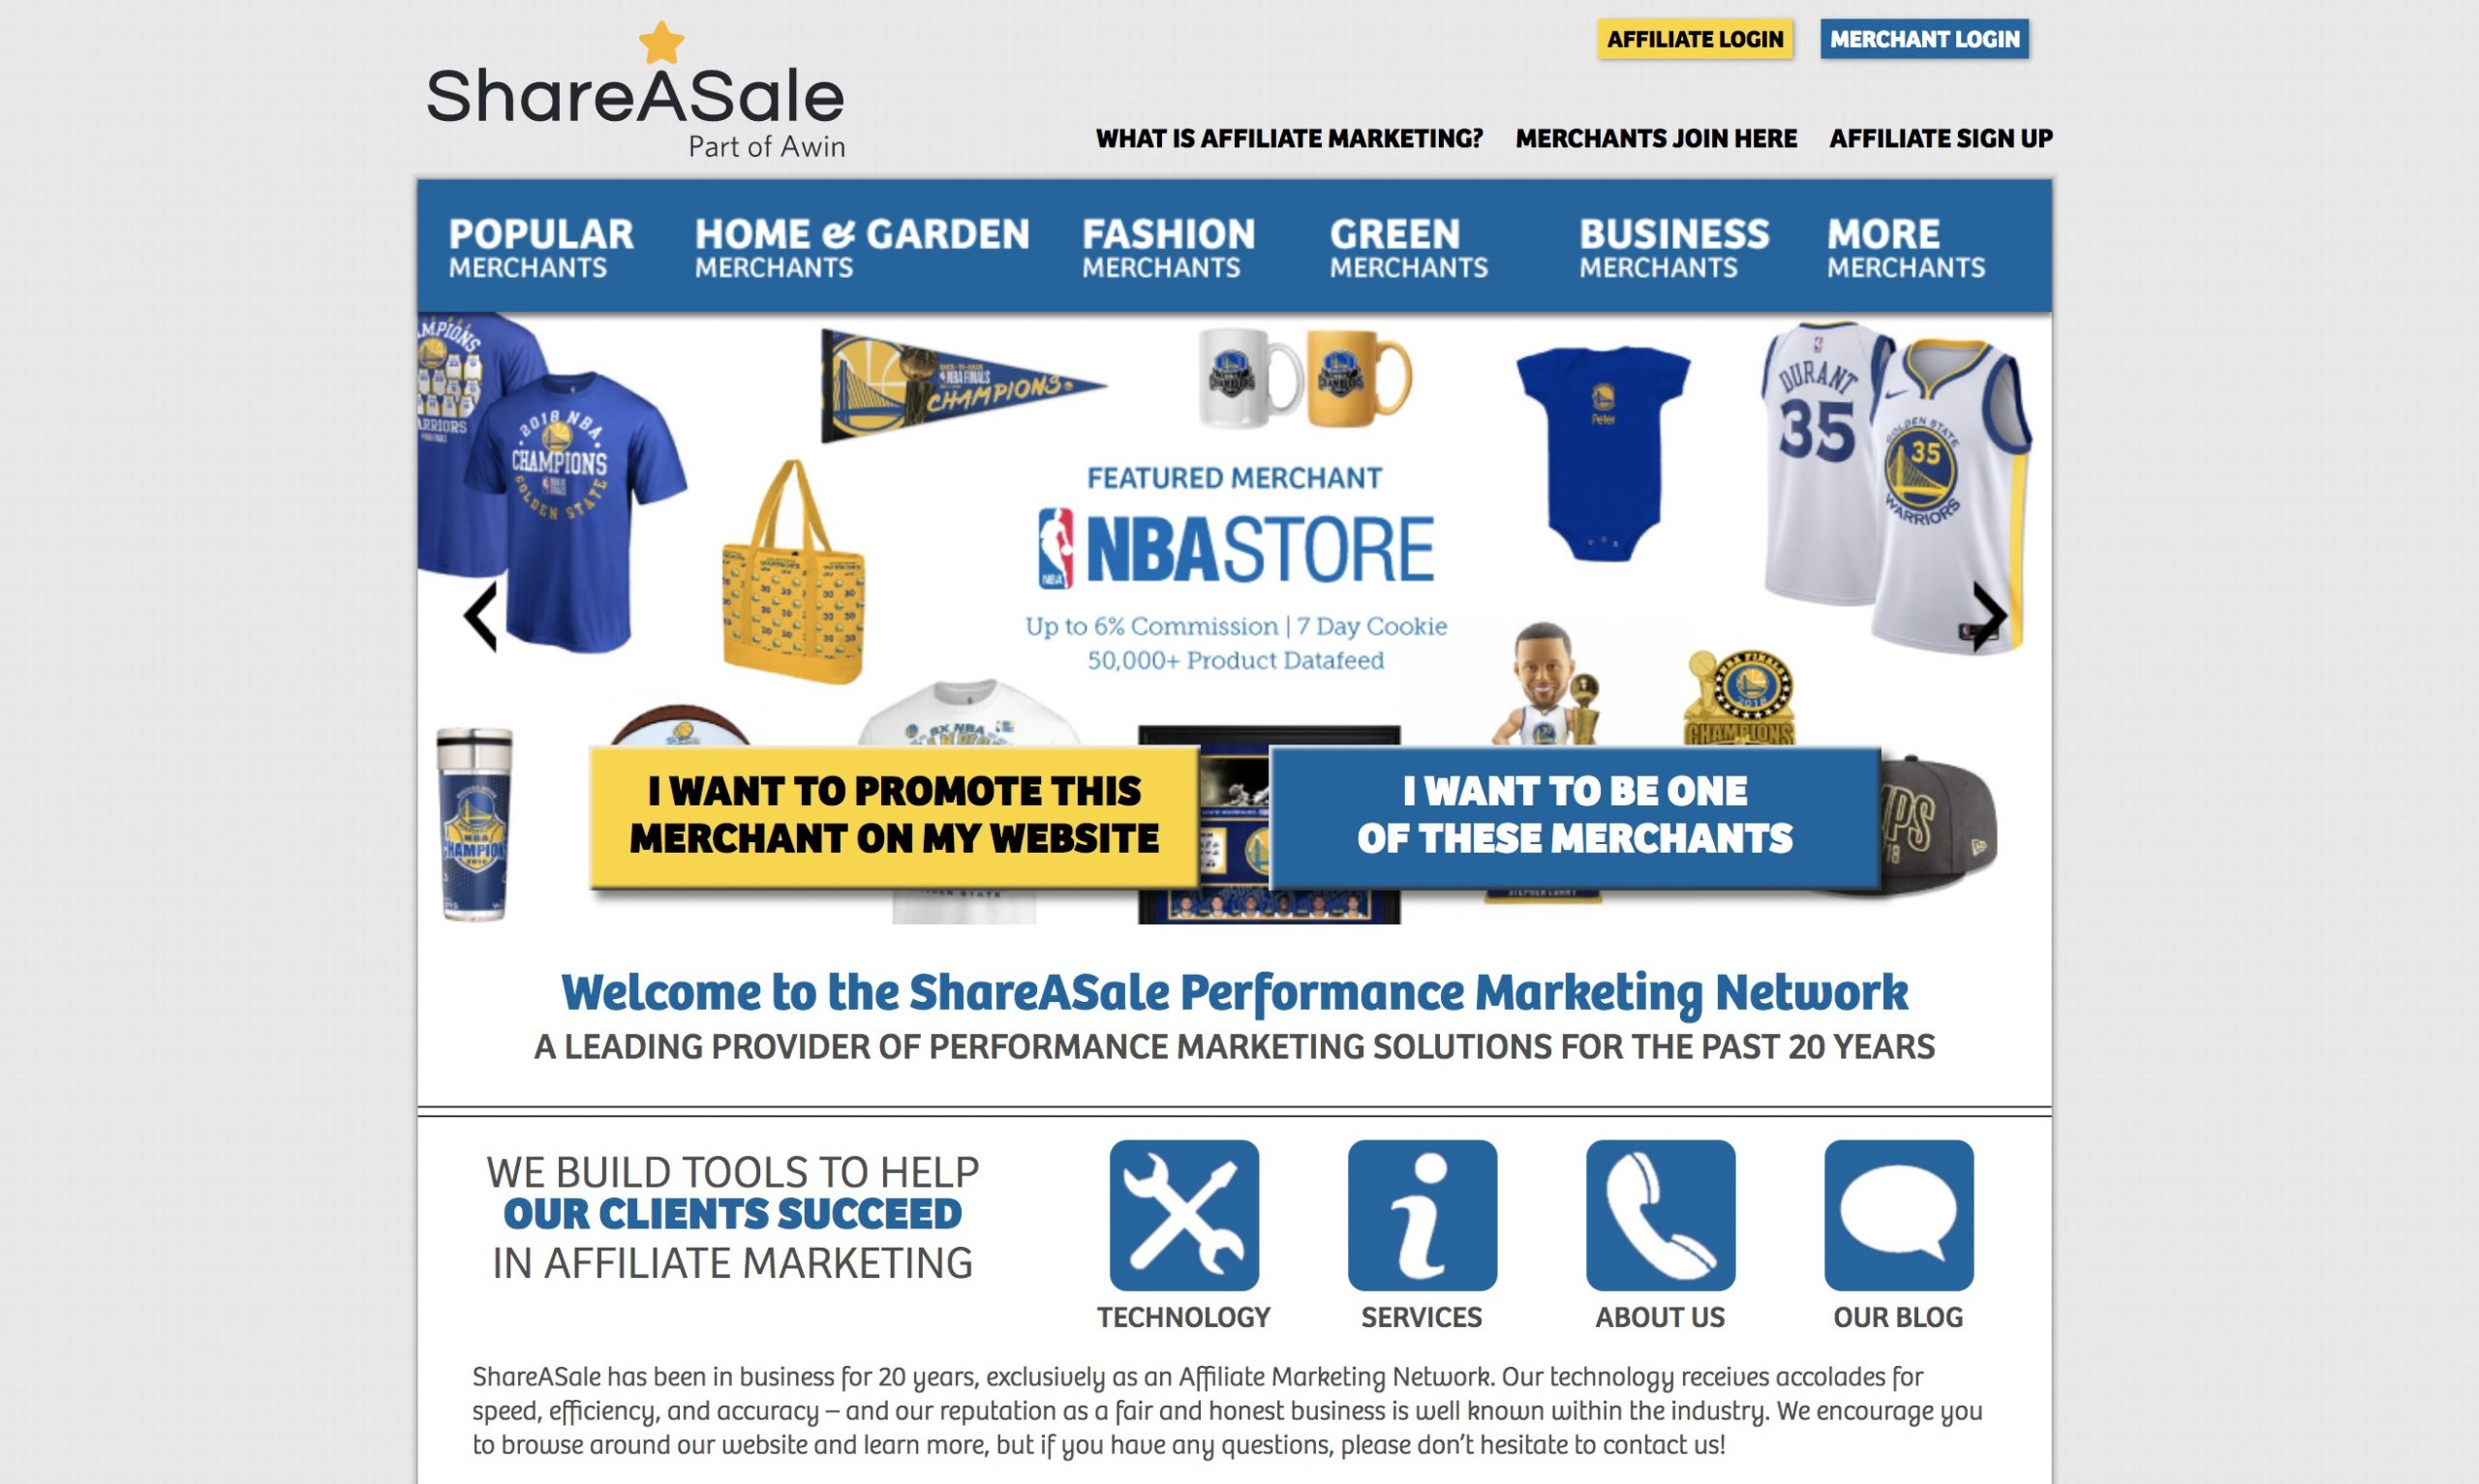 shareasale homepage for cb alternative